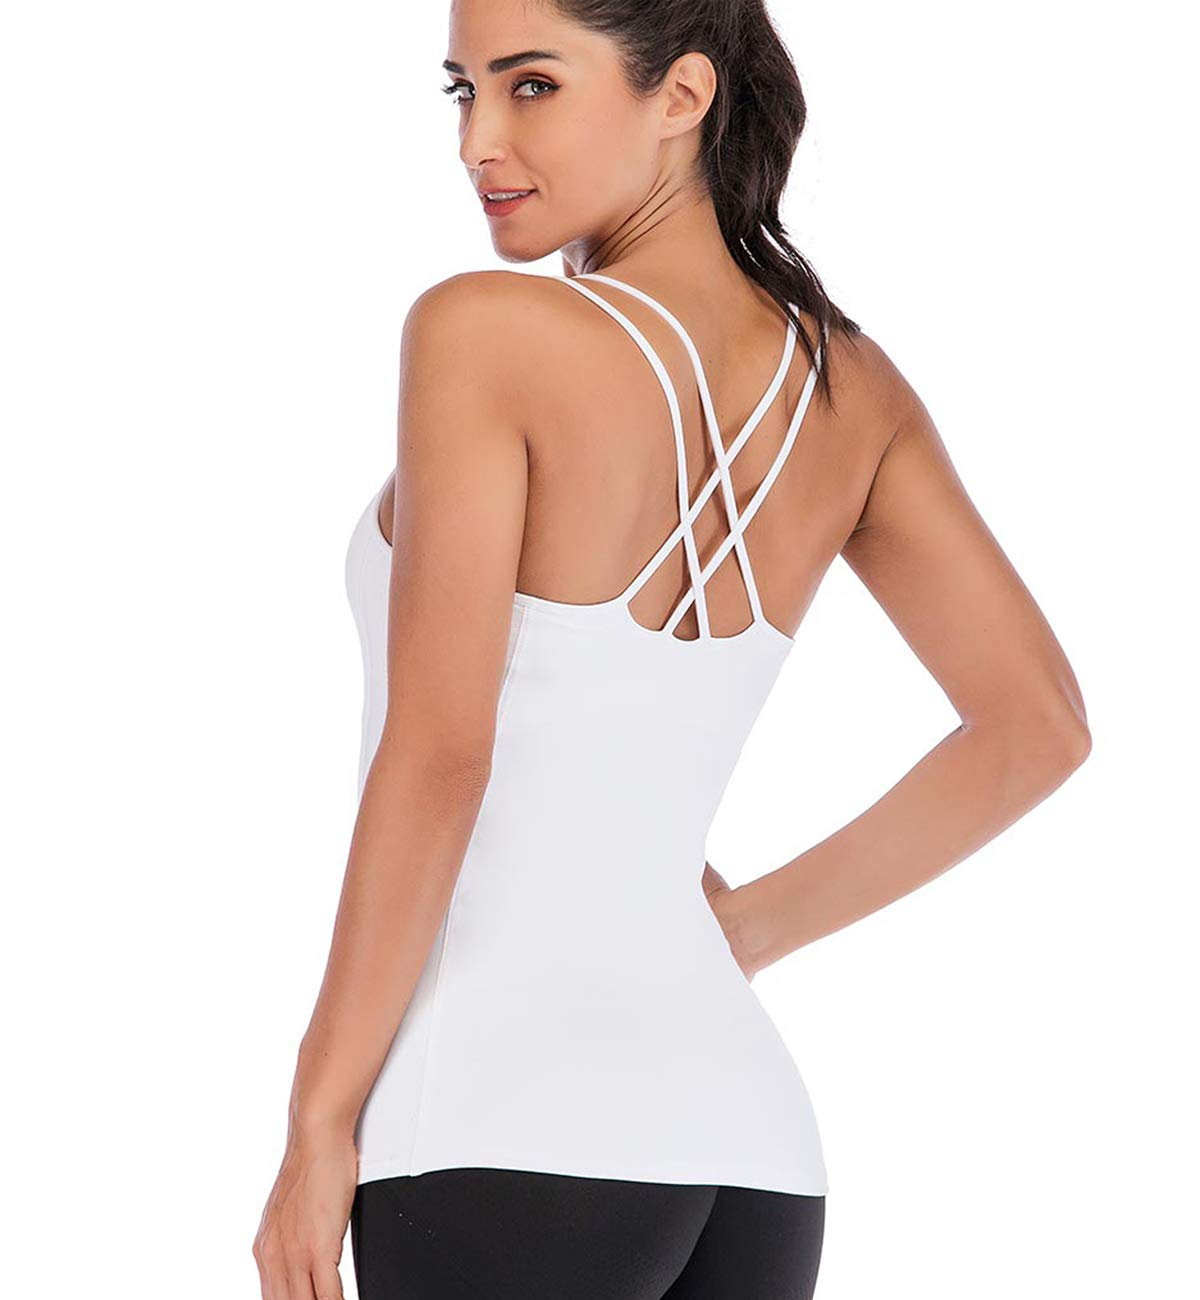 TALEVE Women Yoga Tank Tops Workout Shirts Built in Shelf Bra Strappy Back Activewear Racerback Compression Top White by TALEVE